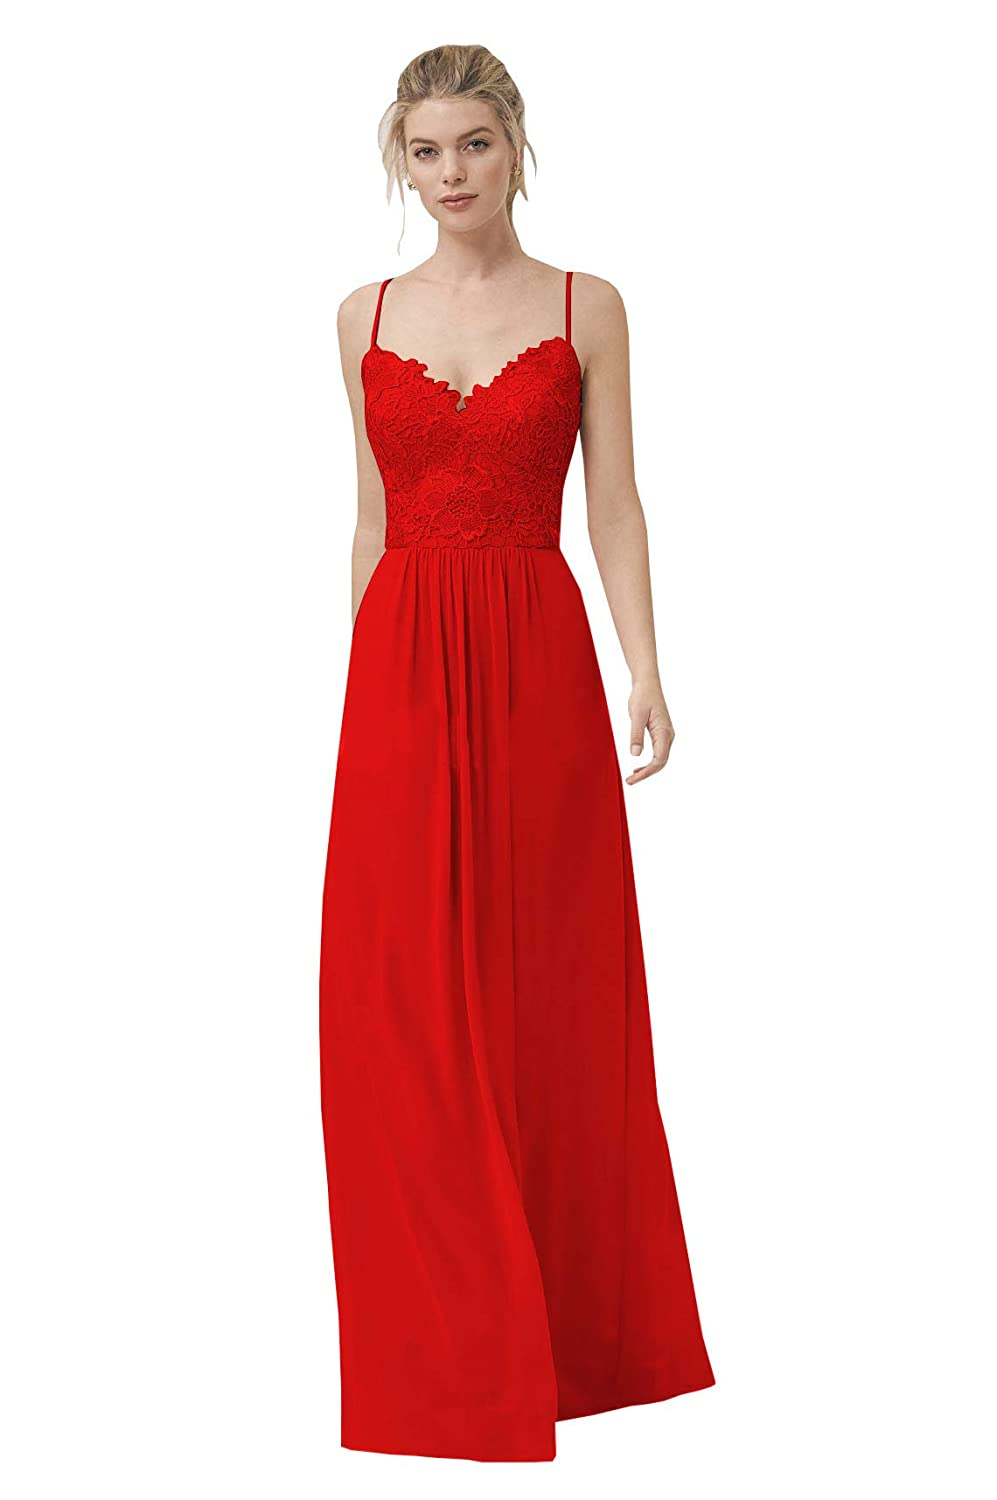 Now and Forever Womens Long Lace Chiffon Bridesmaid Dresses A-Line Spaghetti Straps V-Neck Formal Prom Gowns